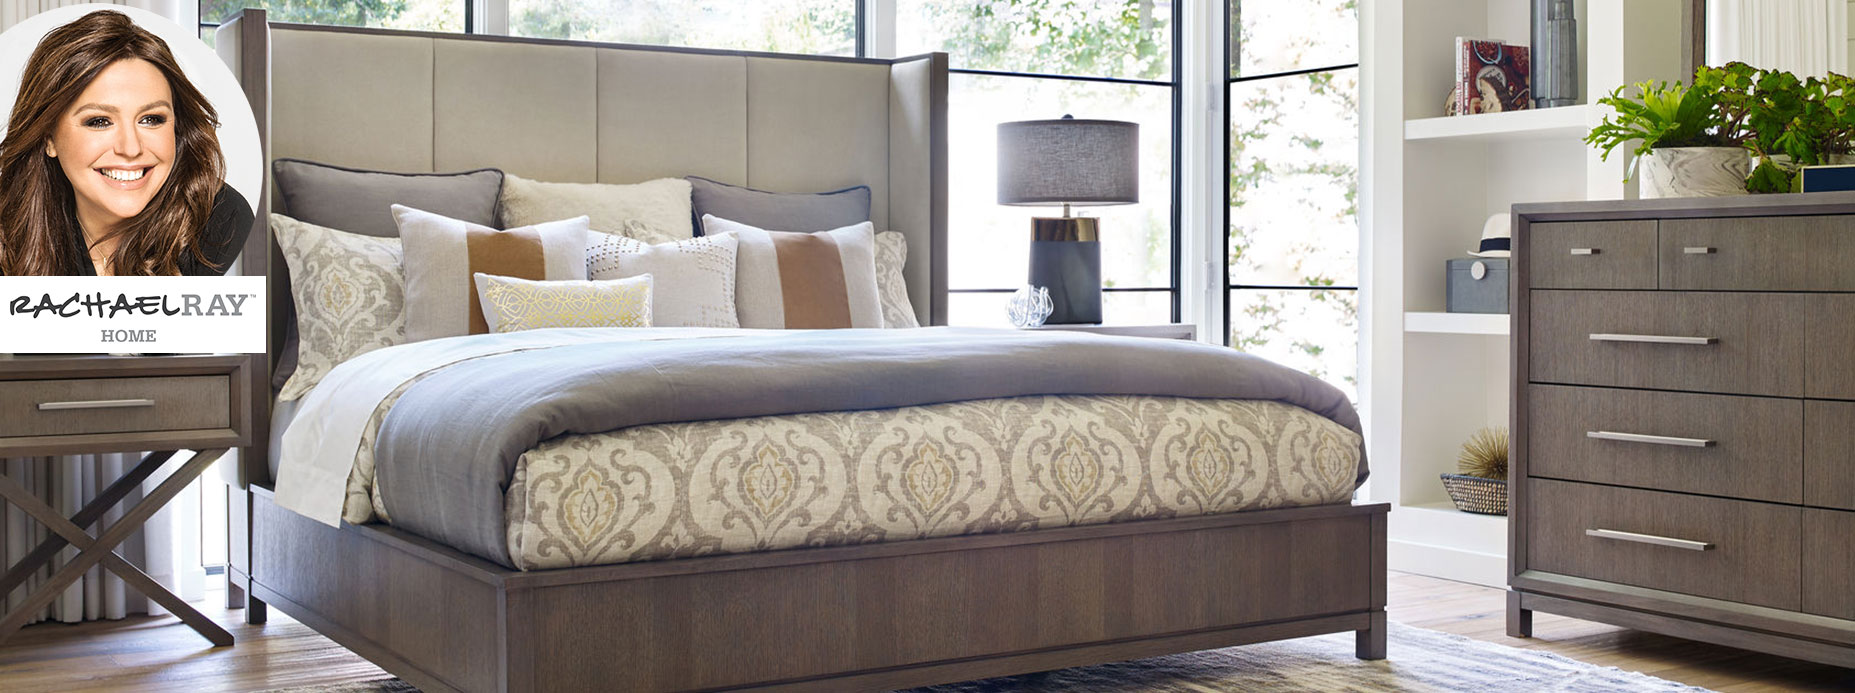 Rachael Ray Home Furniture Discount Store And Showroom In Hickory NC 28602